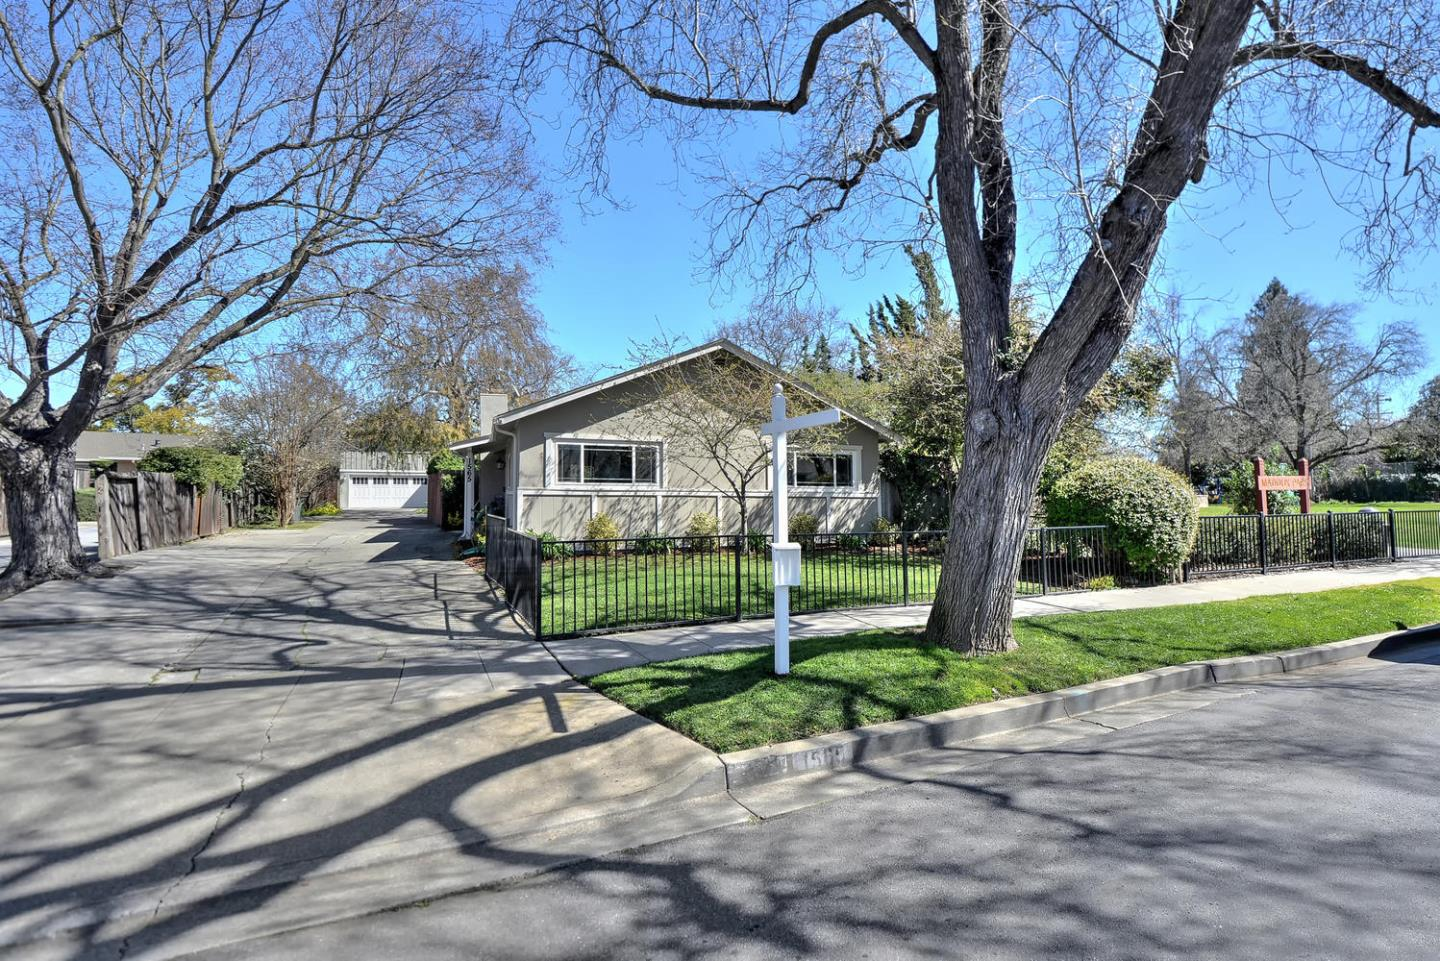 Additional photo for property listing at 1565 Maddux Dr  REDWOOD CITY, CALIFORNIA 94061